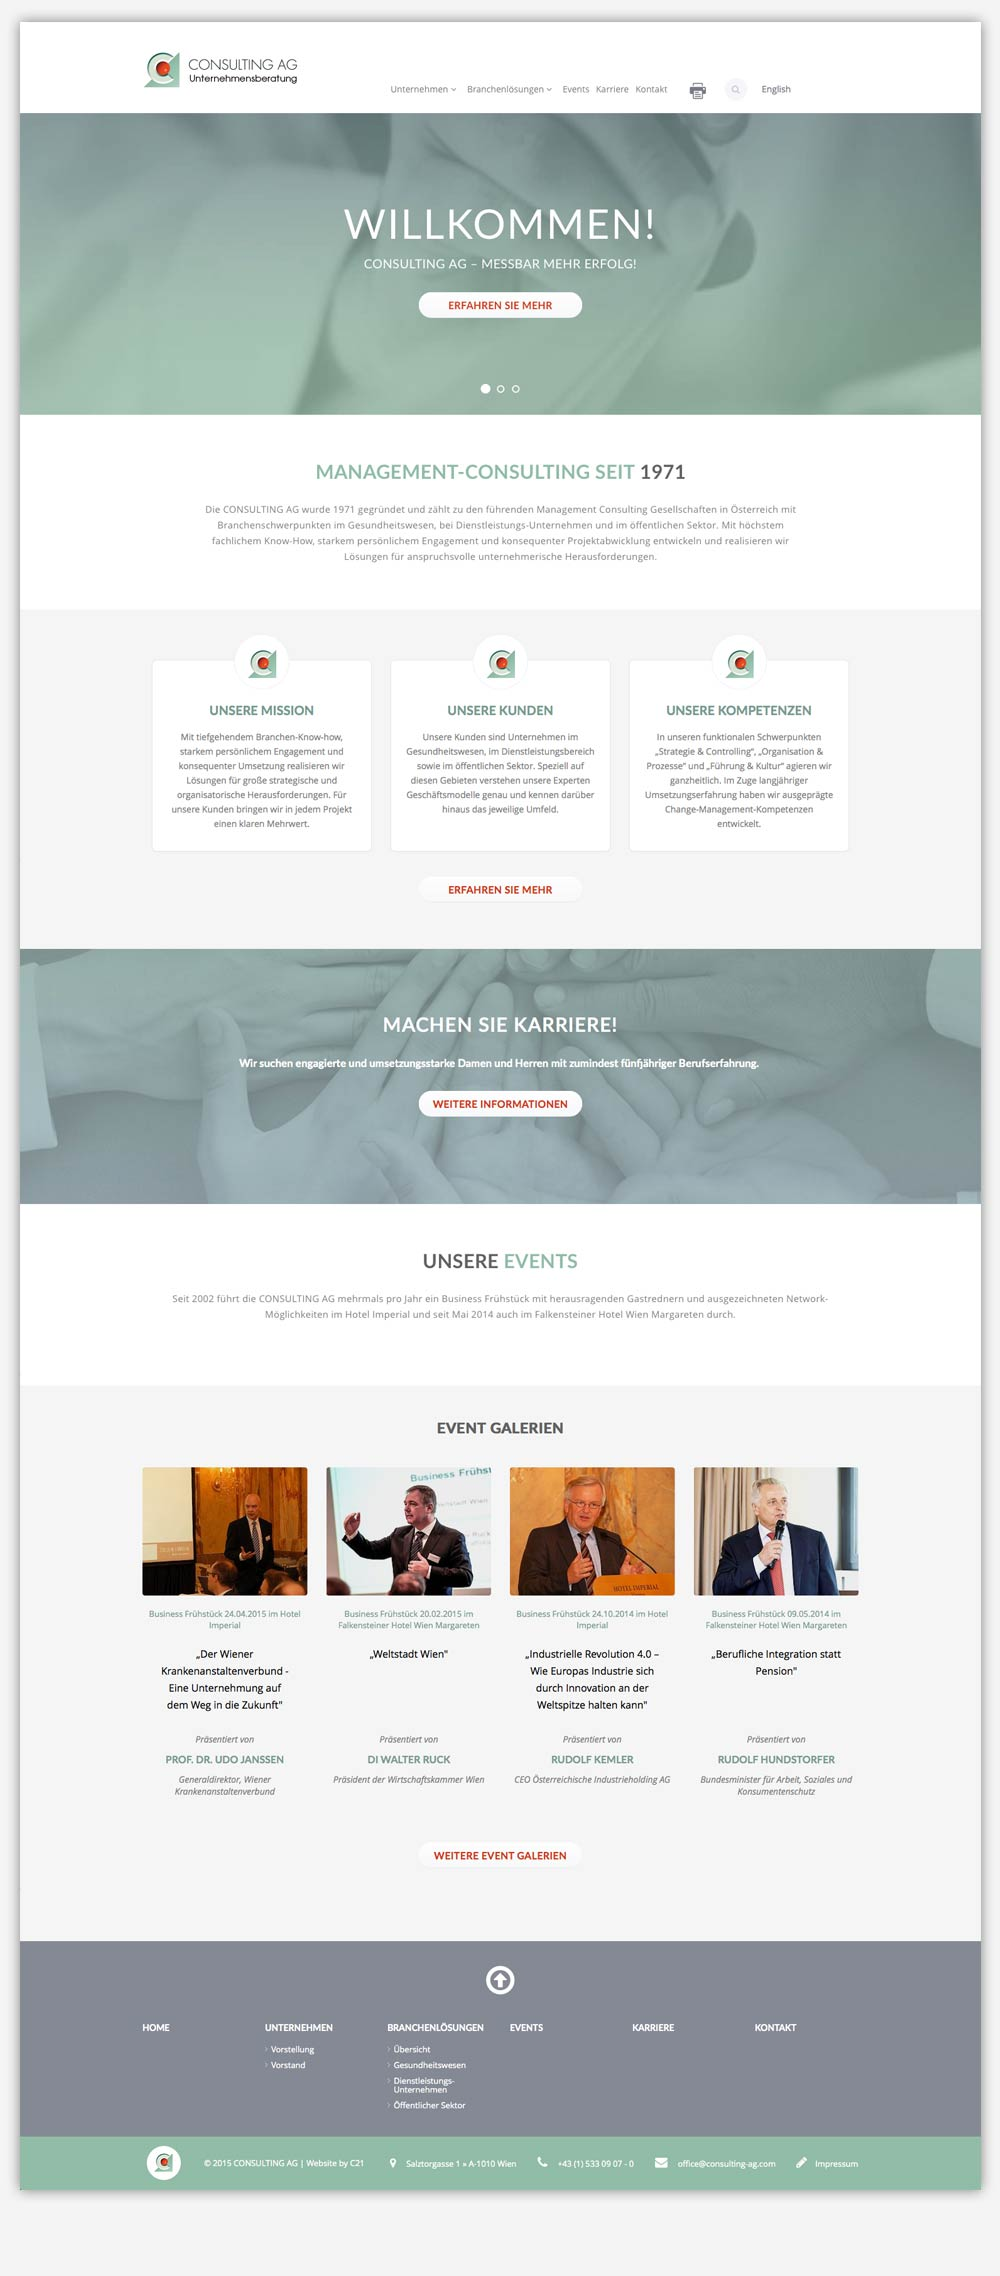 Consulting ag website c21 new media design websites for Consulting website